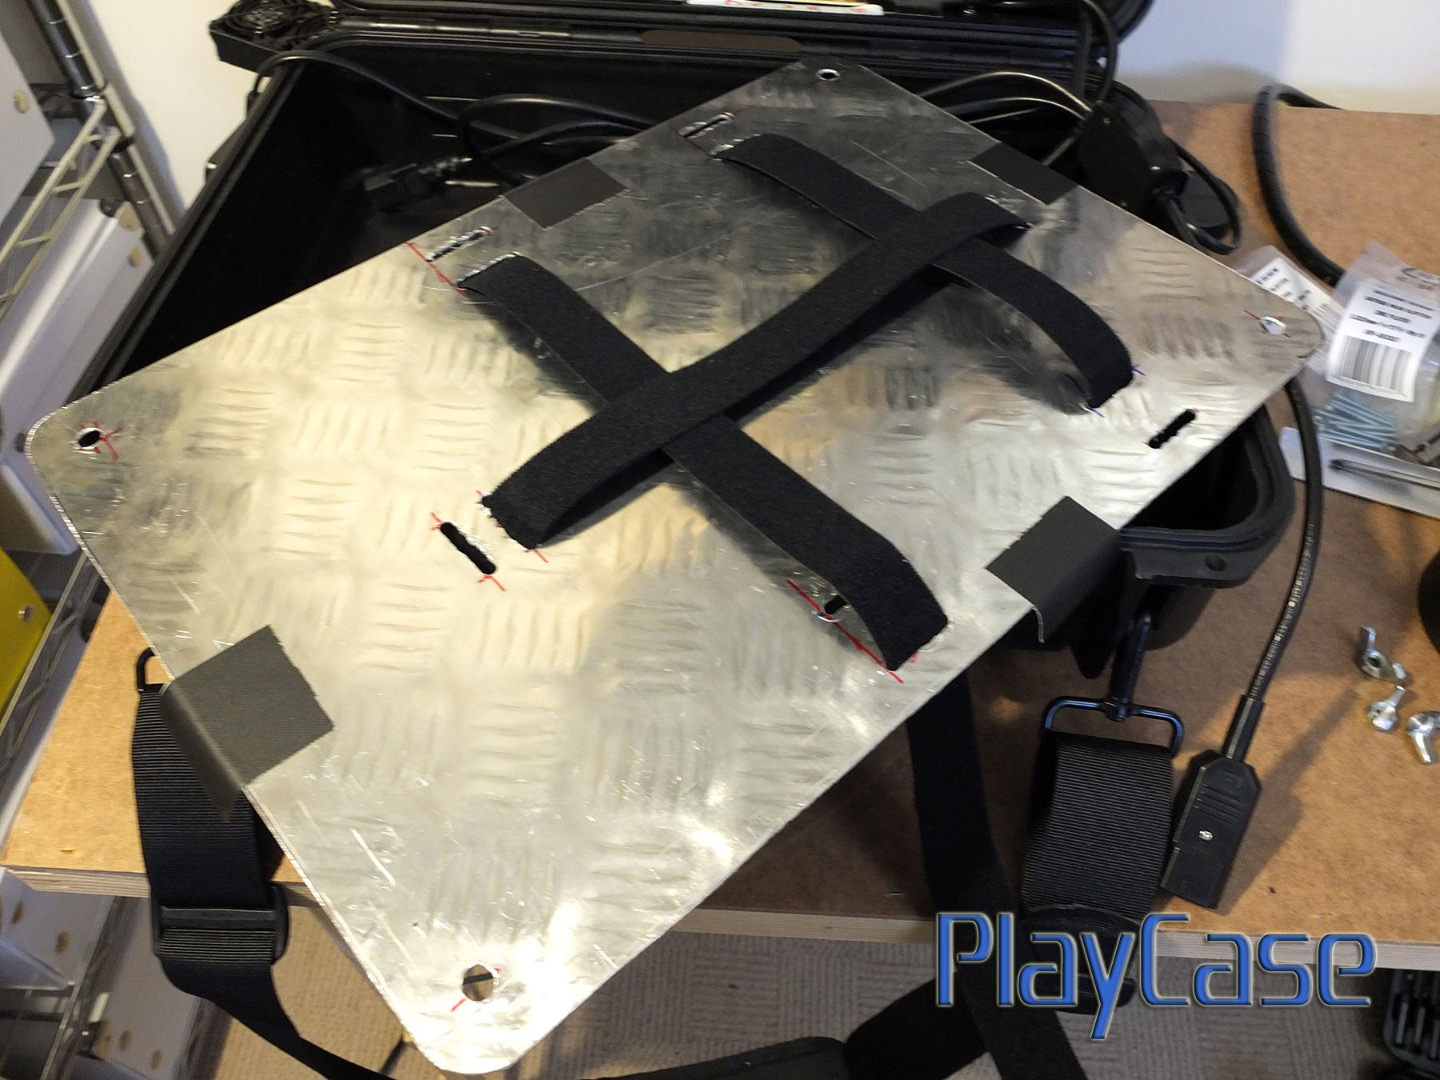 Picture of Modular System for PS3 or PS4